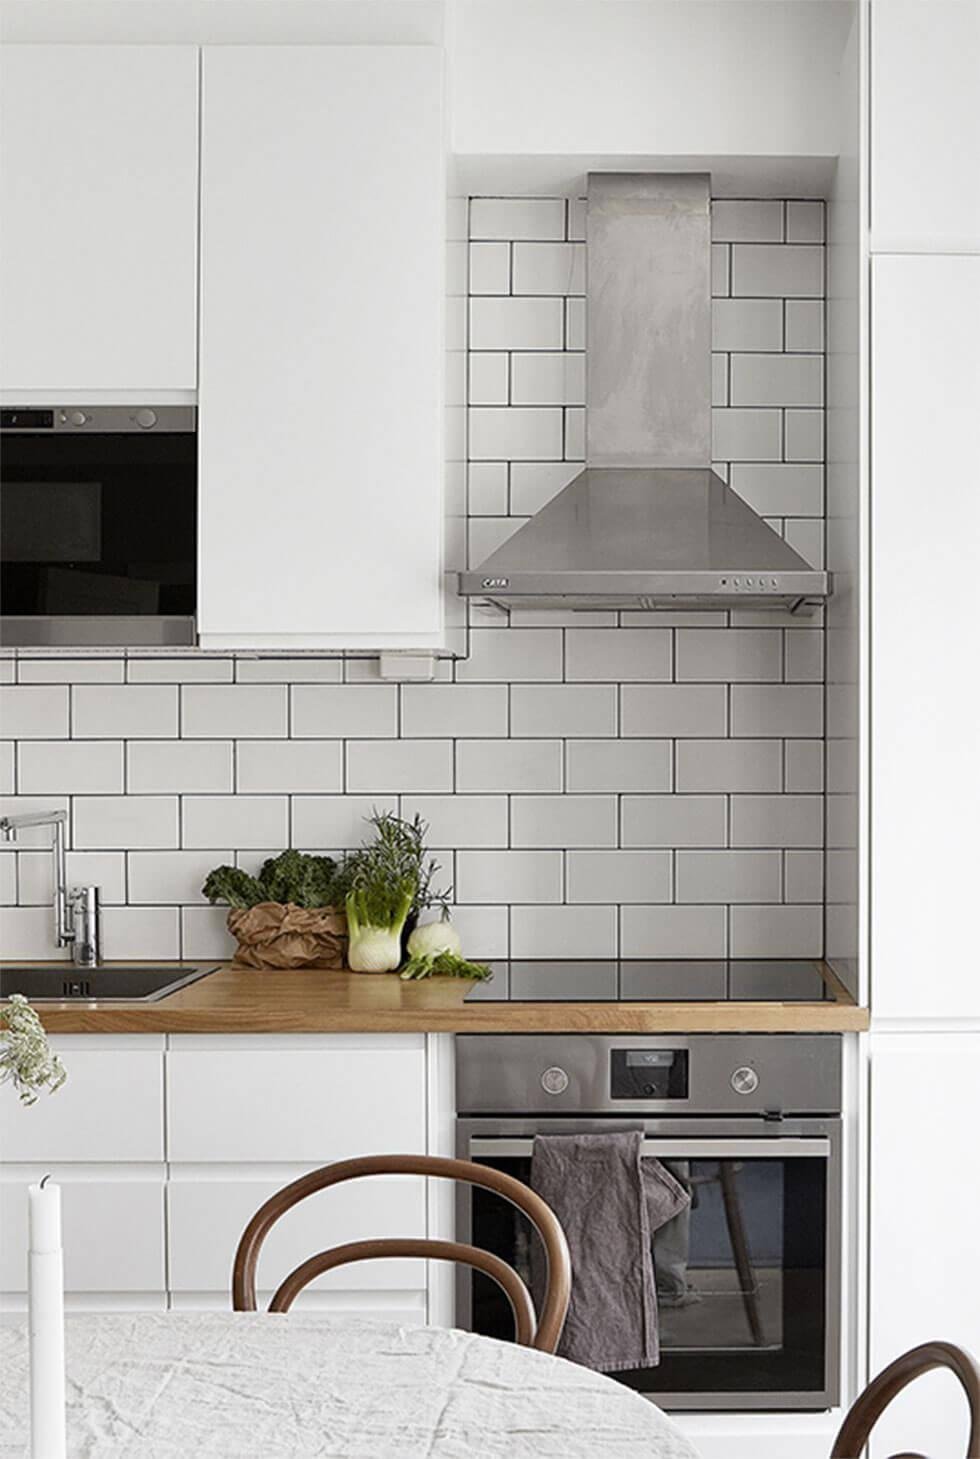 Small kitchen with white cabinets and dining table, subway tile backsplash and chrome cooking hood